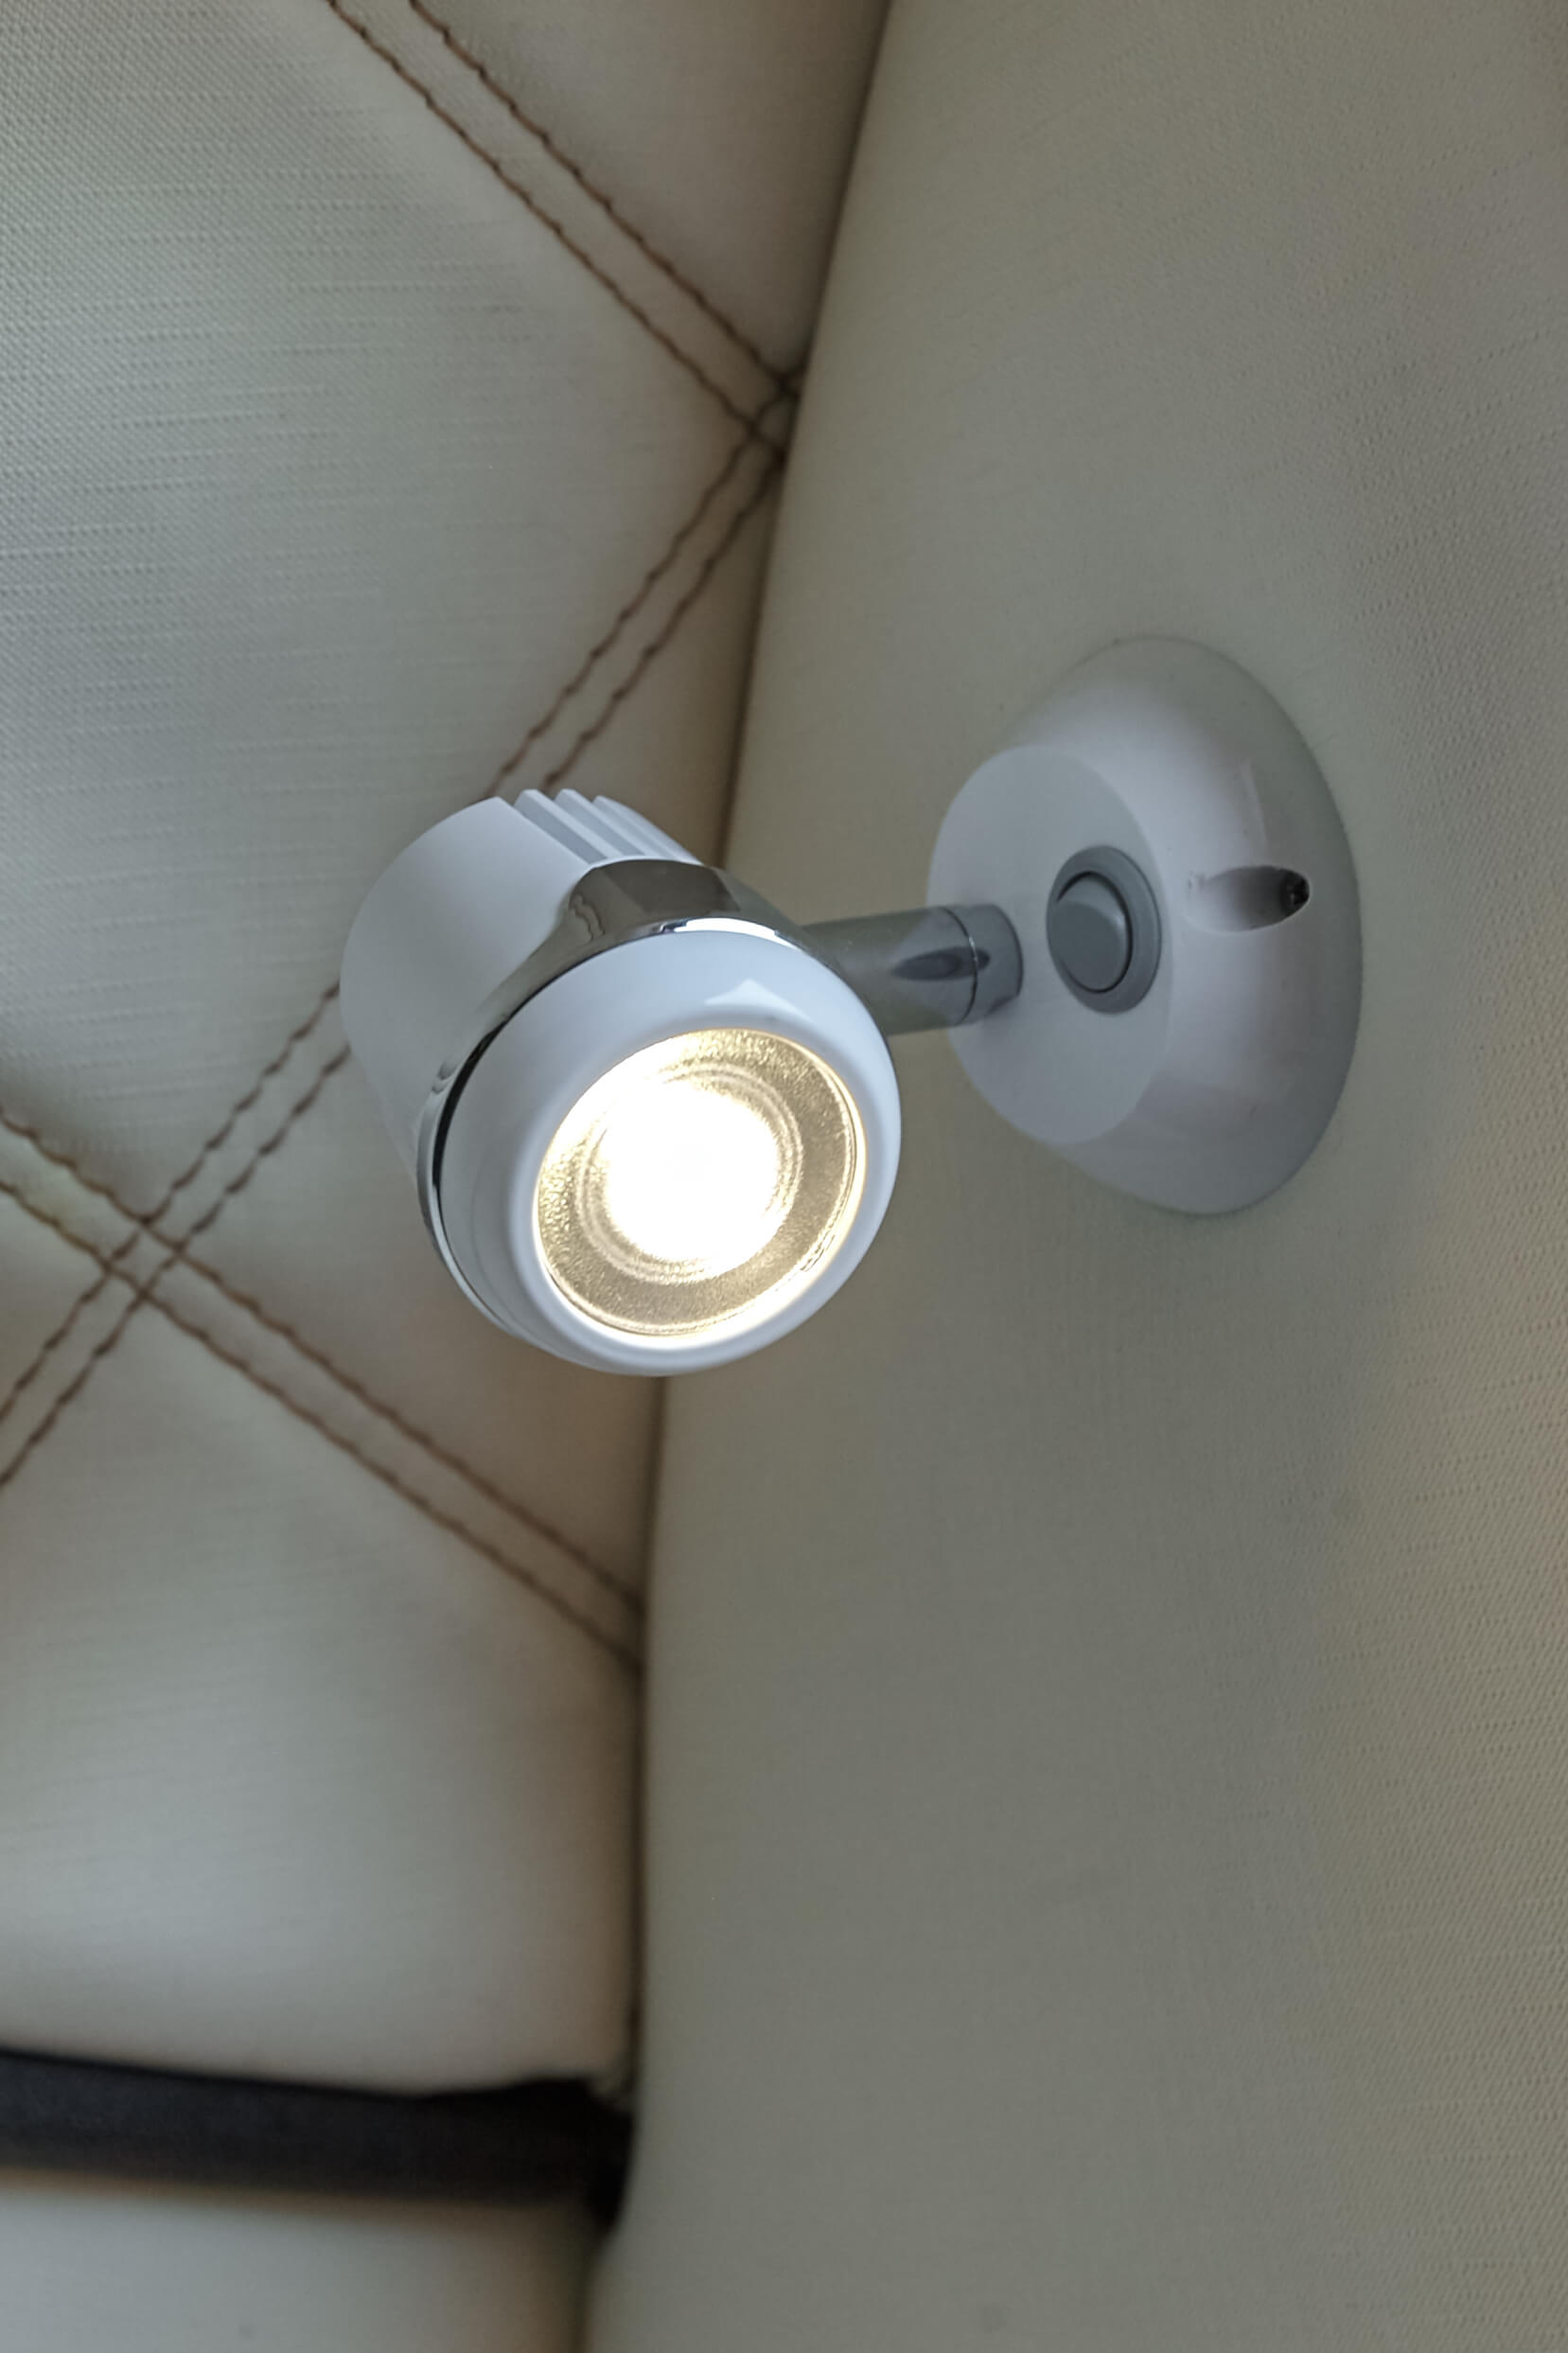 Lamp with a switch